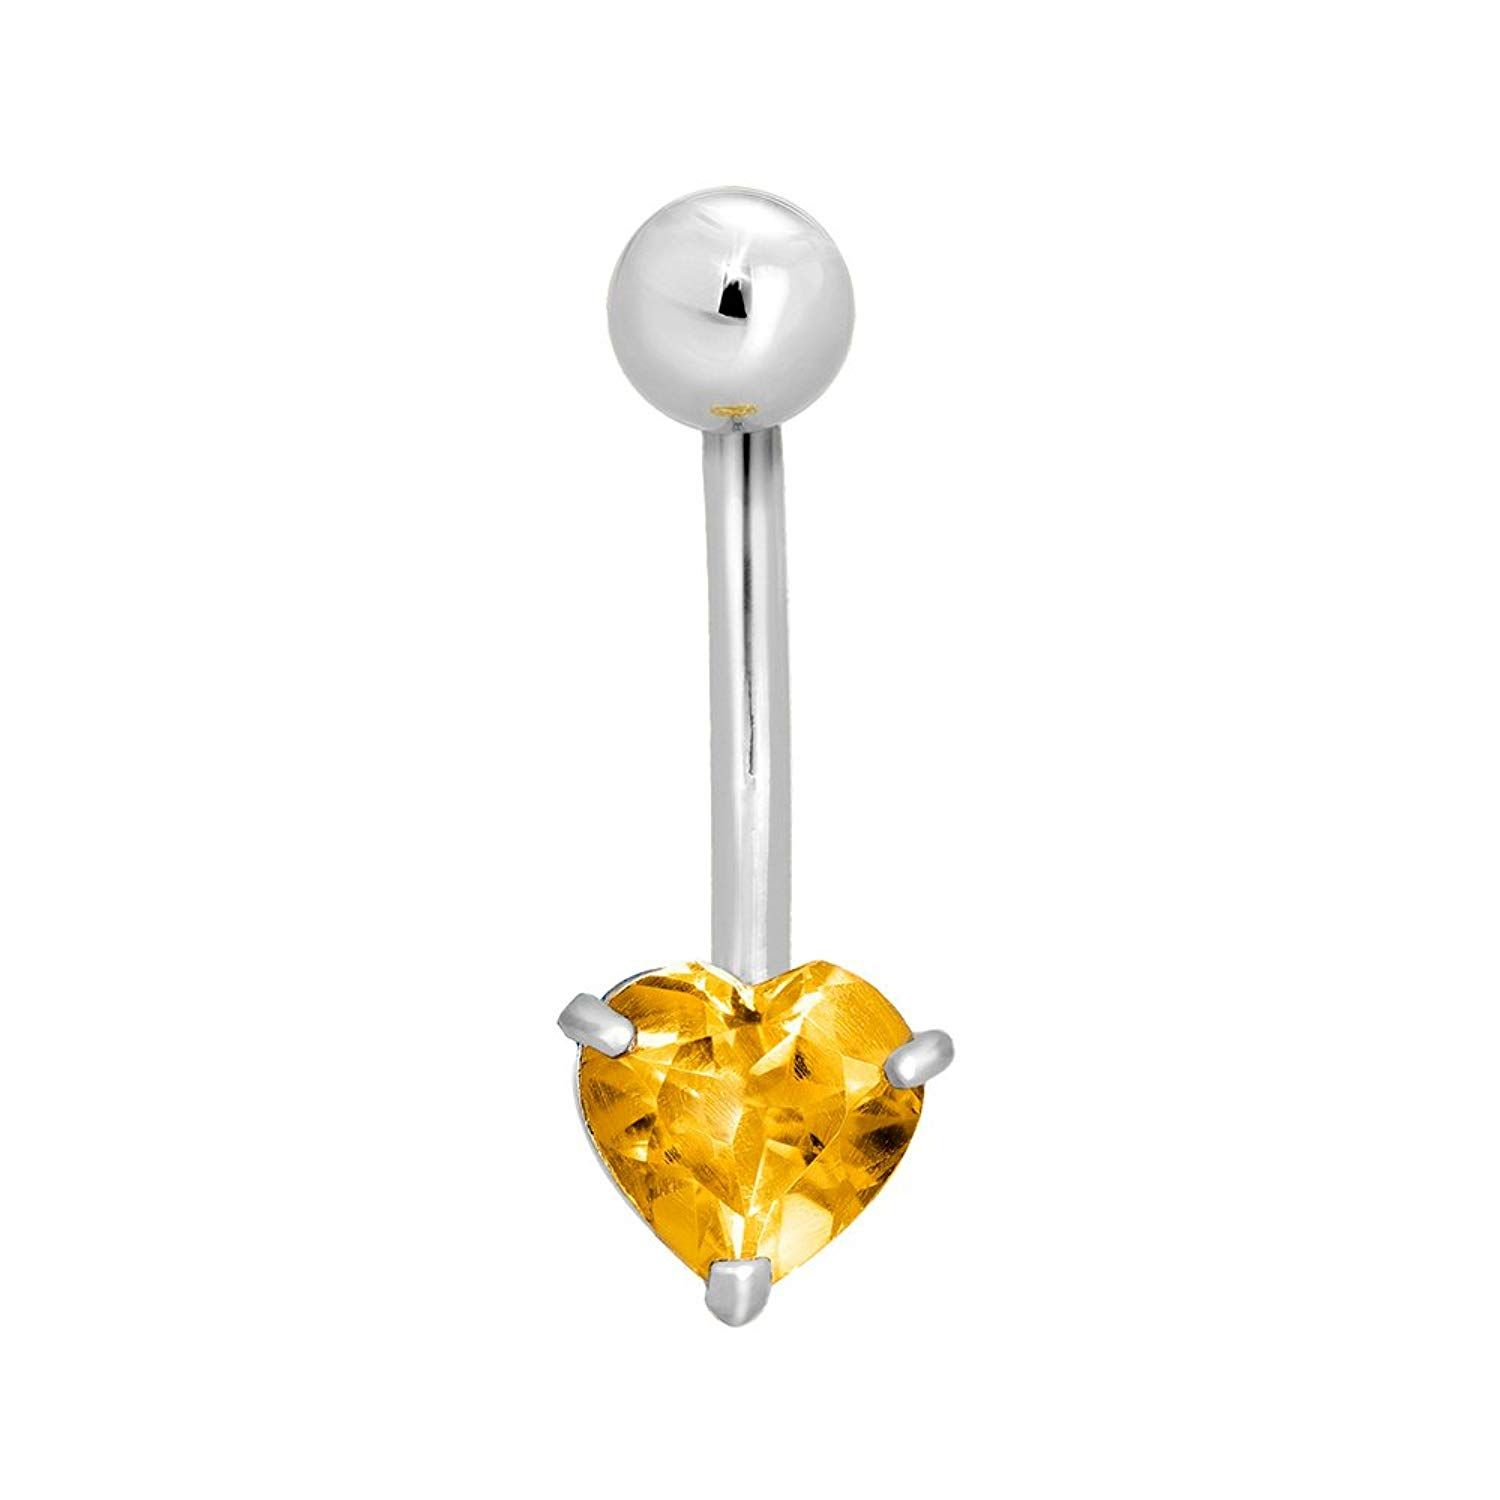 14k Yellow or White Gold Belly Ring Heart Body Jewelry